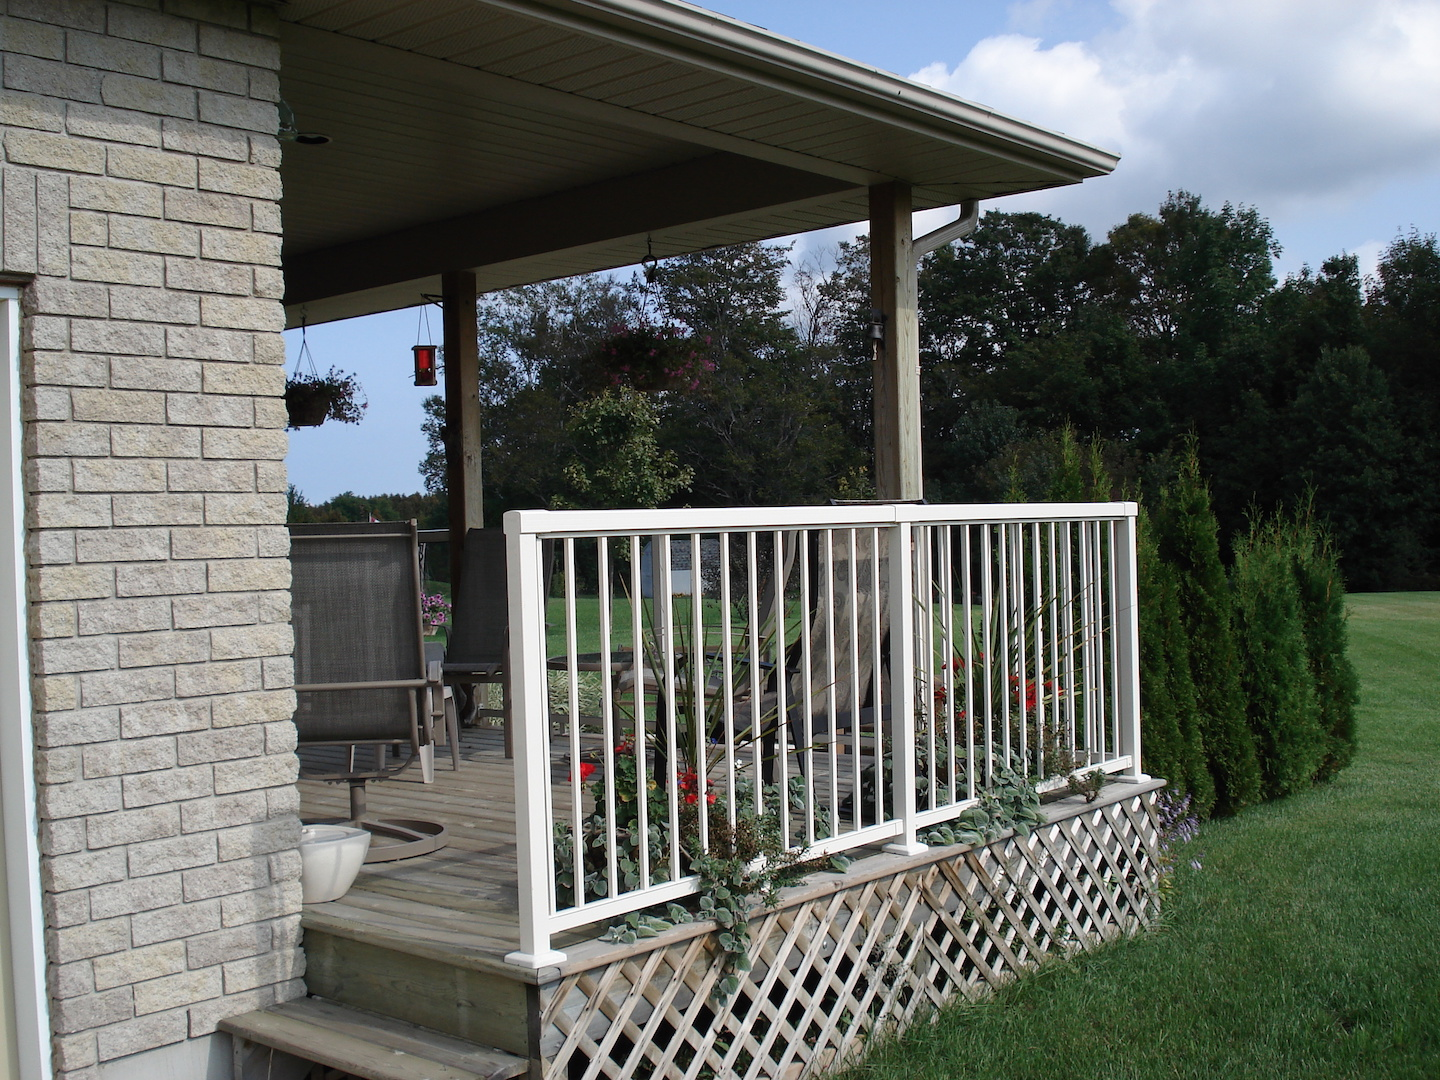 regular metal picket railings